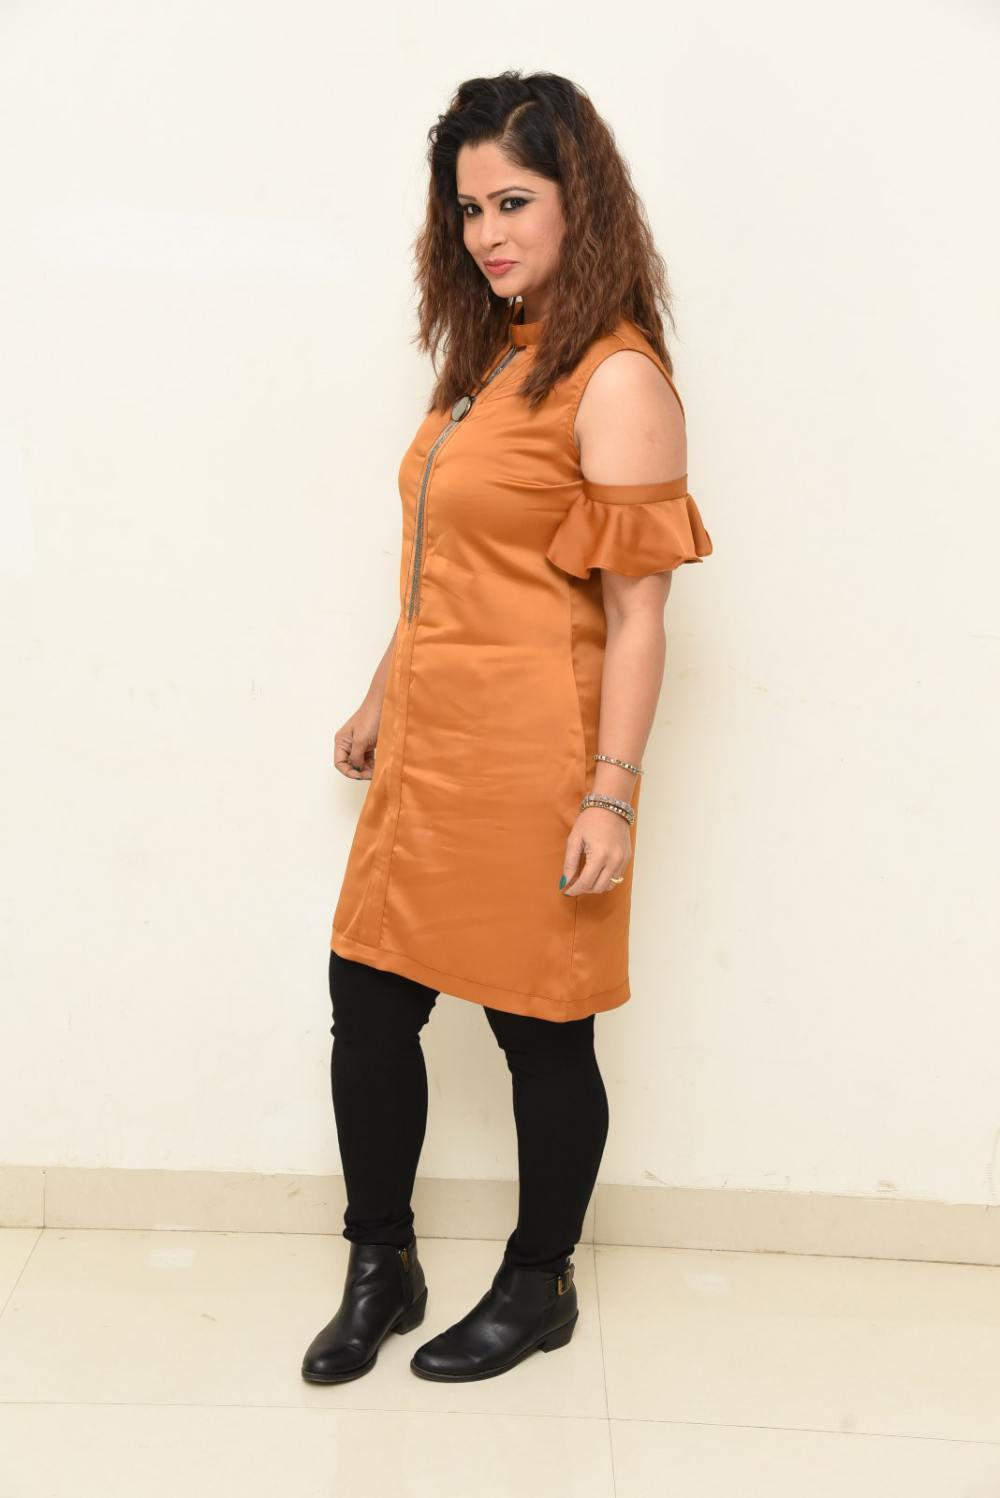 shilpa chakravarthy at peta movie audio launch (9)